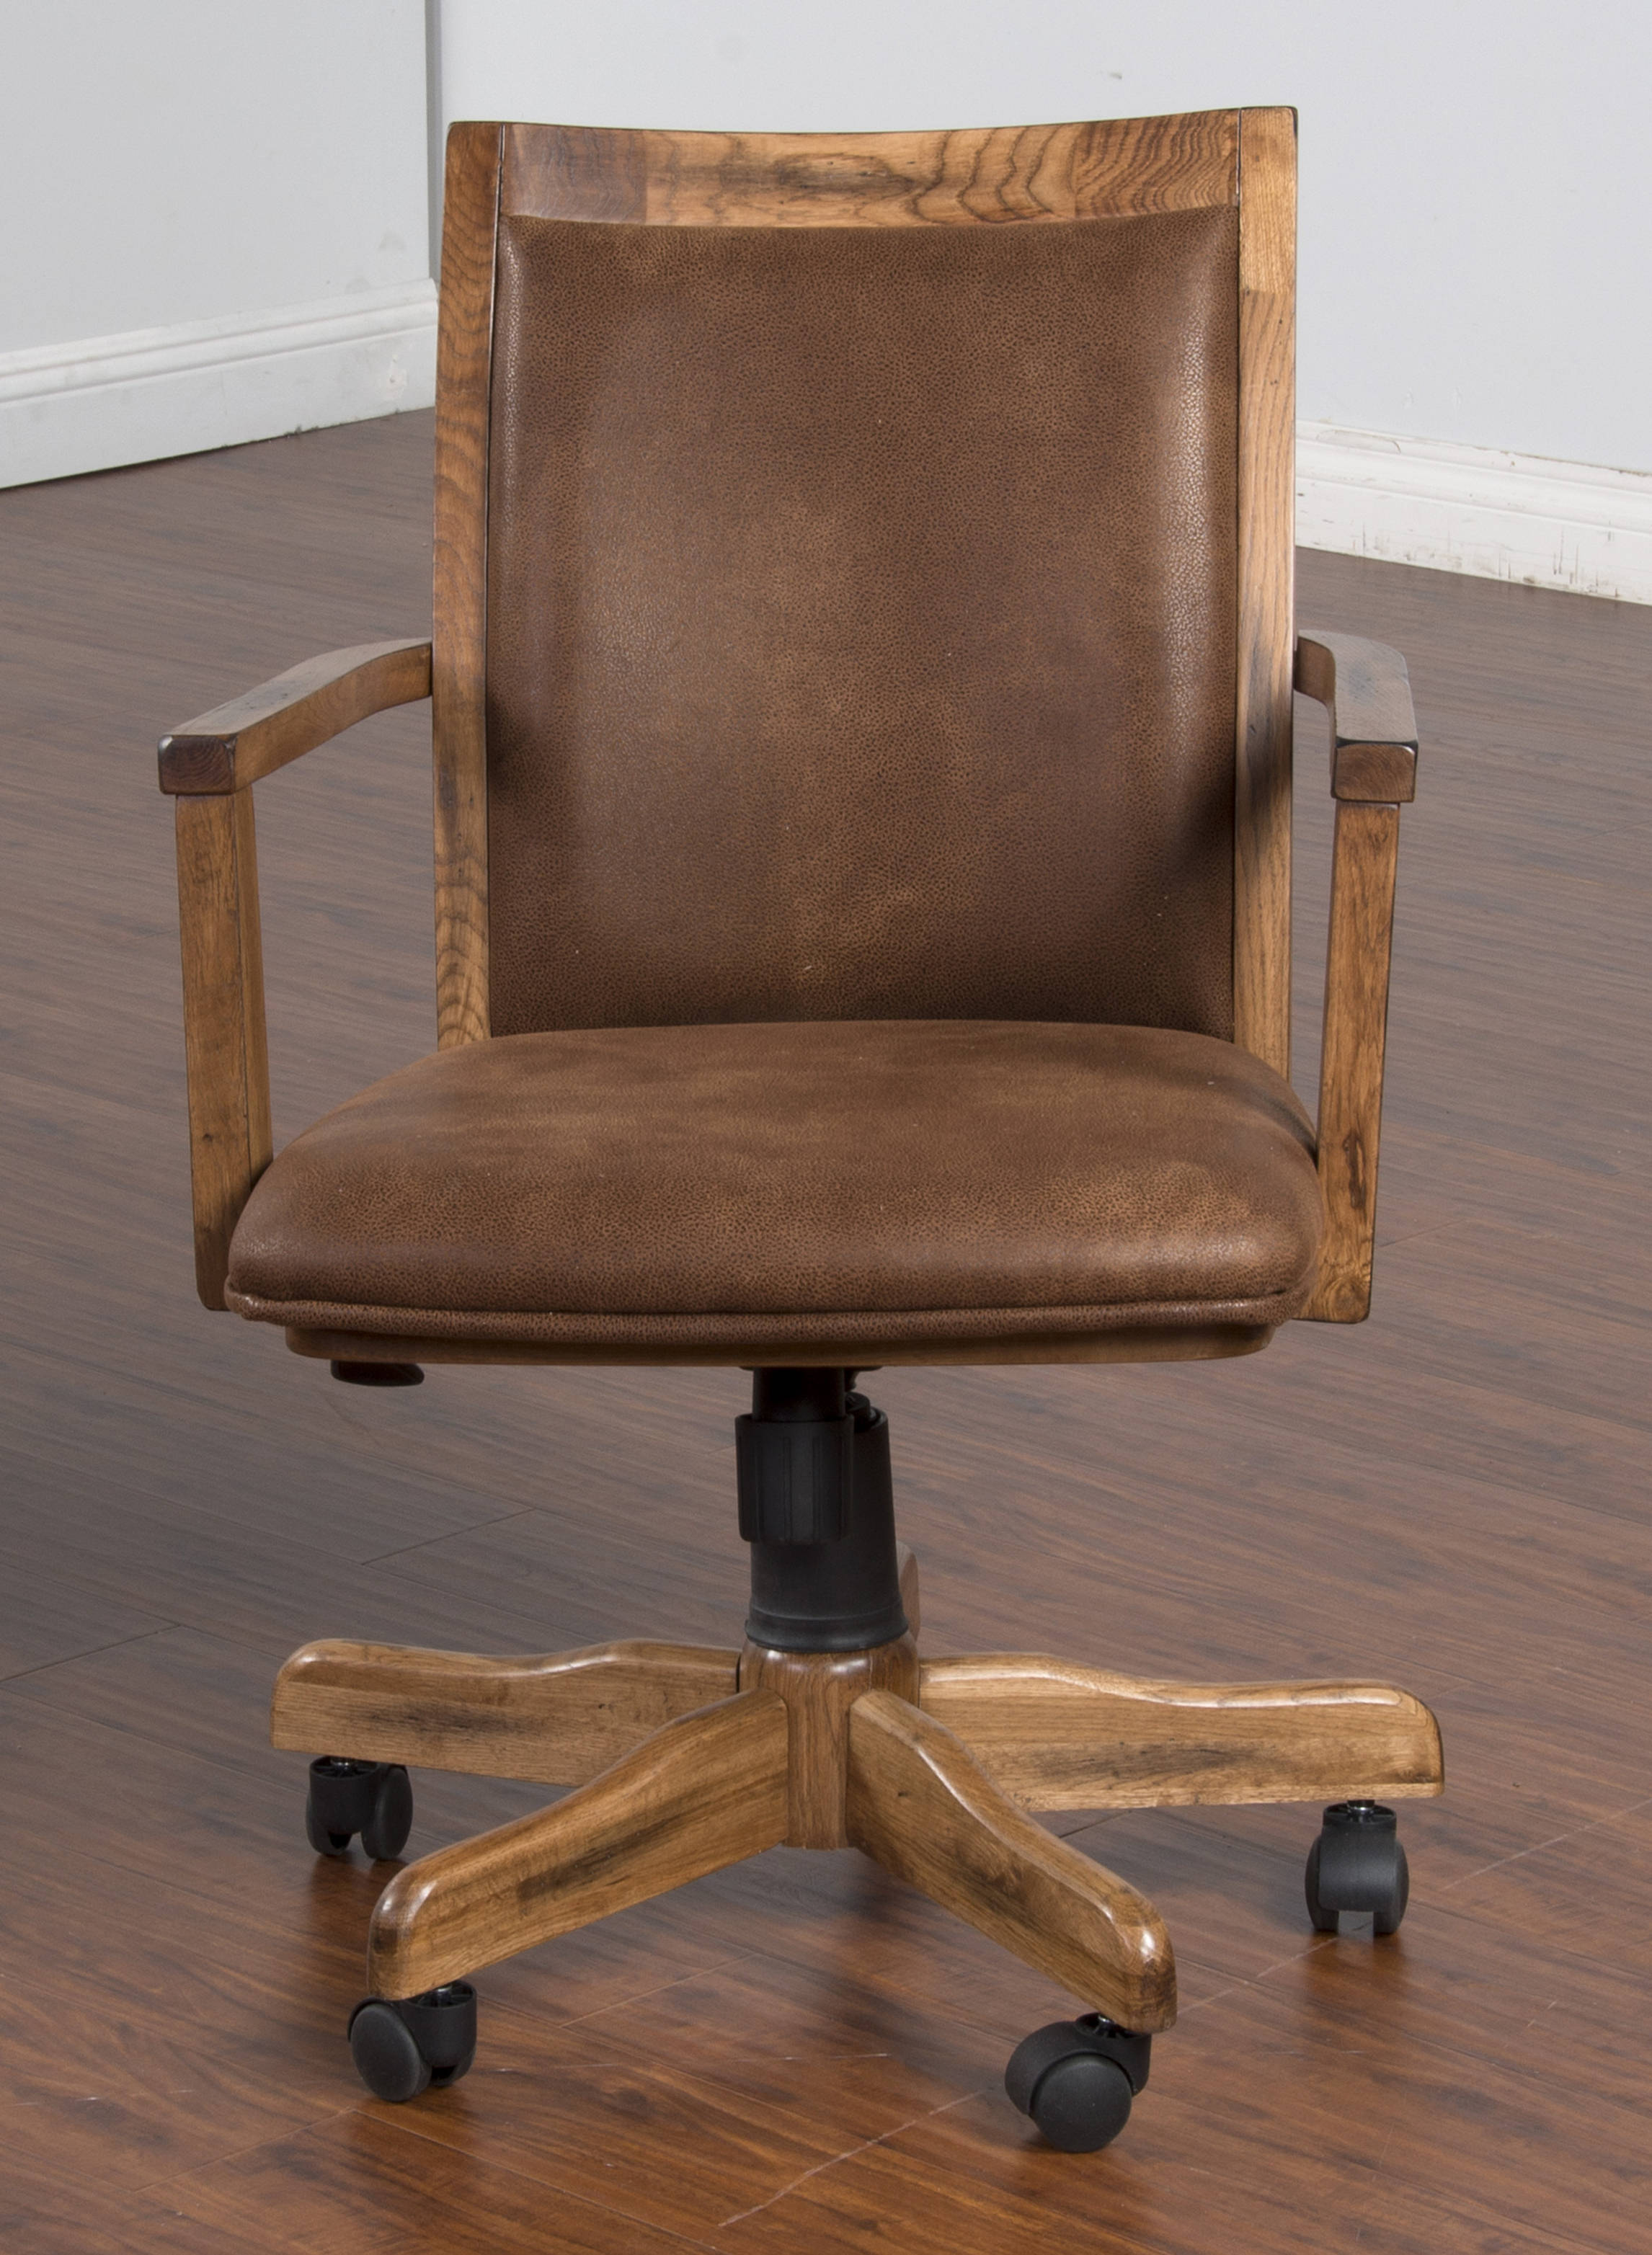 Sunny Designs Sedona Rustic Oak Office Chair To Enlarge